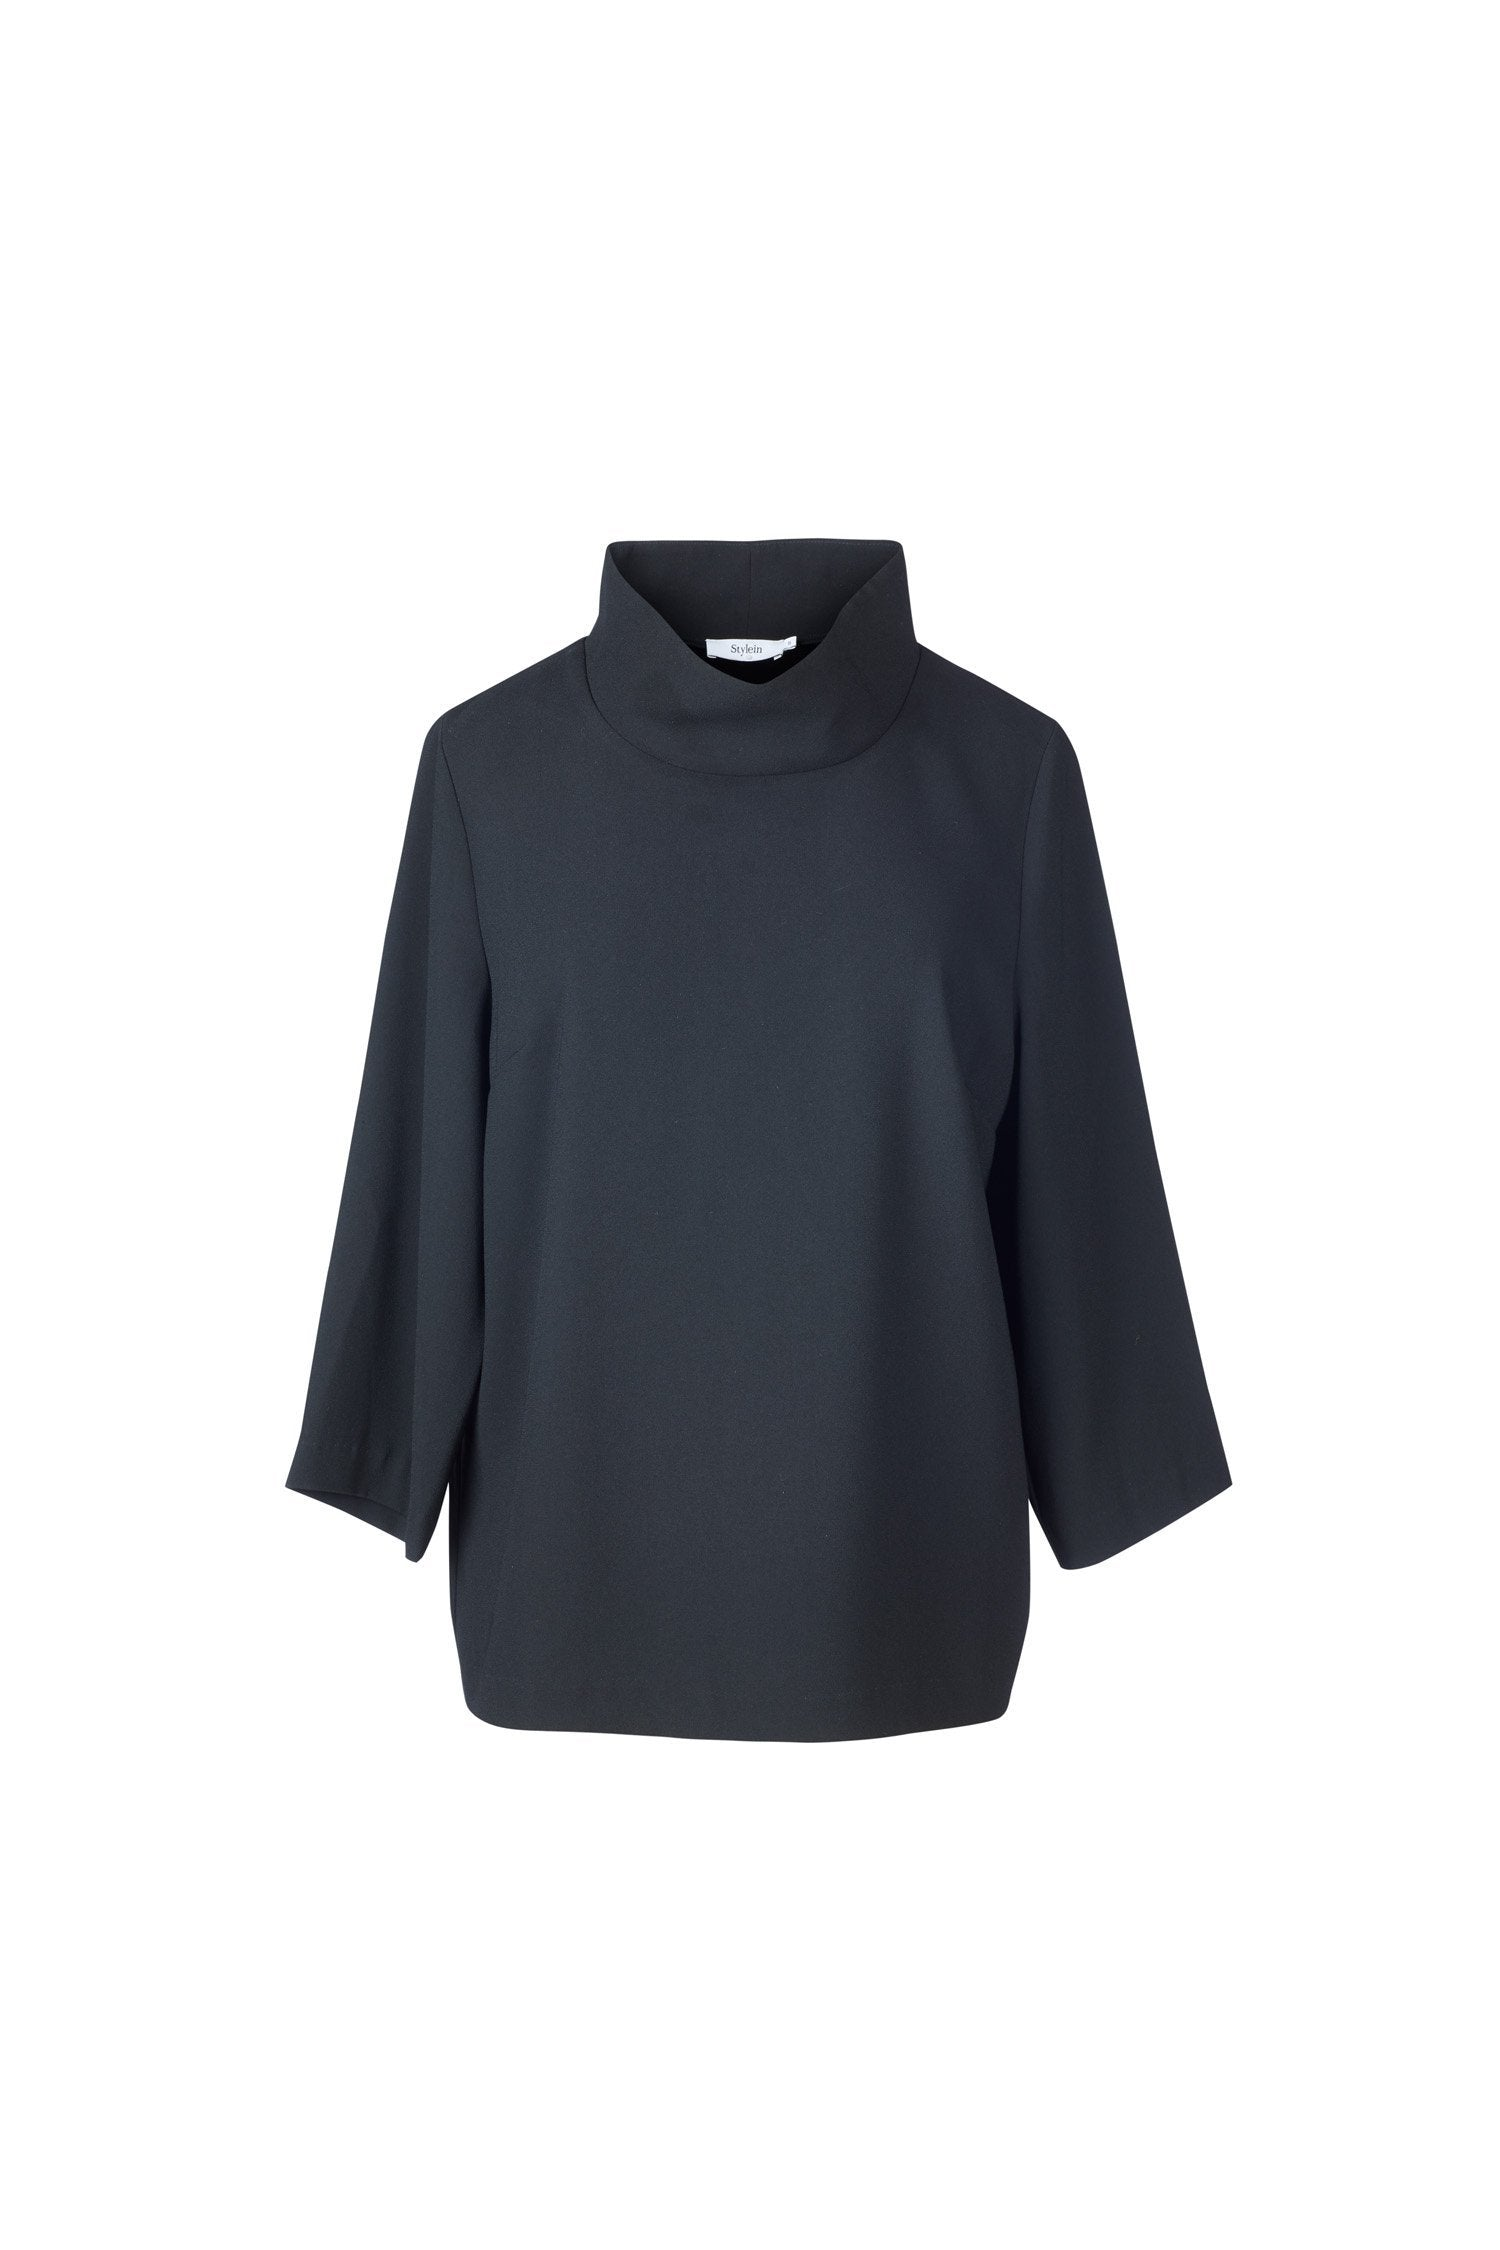 BALE TOP - BLACK Top Stylein